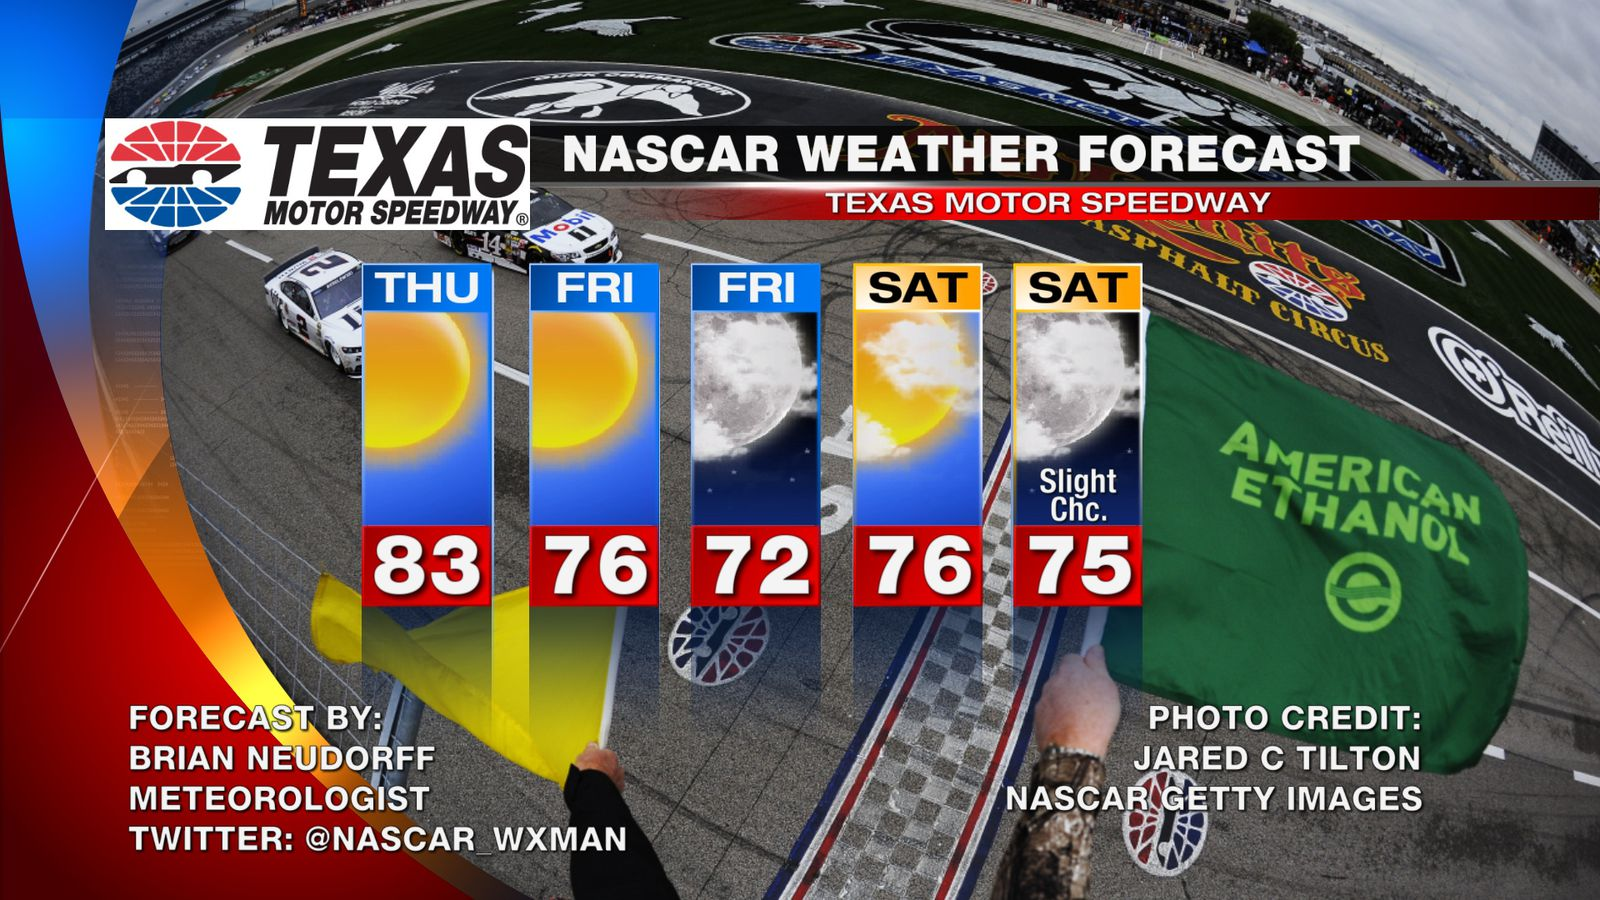 2016 nascar at texas motor speedway weather forecast for Nascar tickets for texas motor speedway